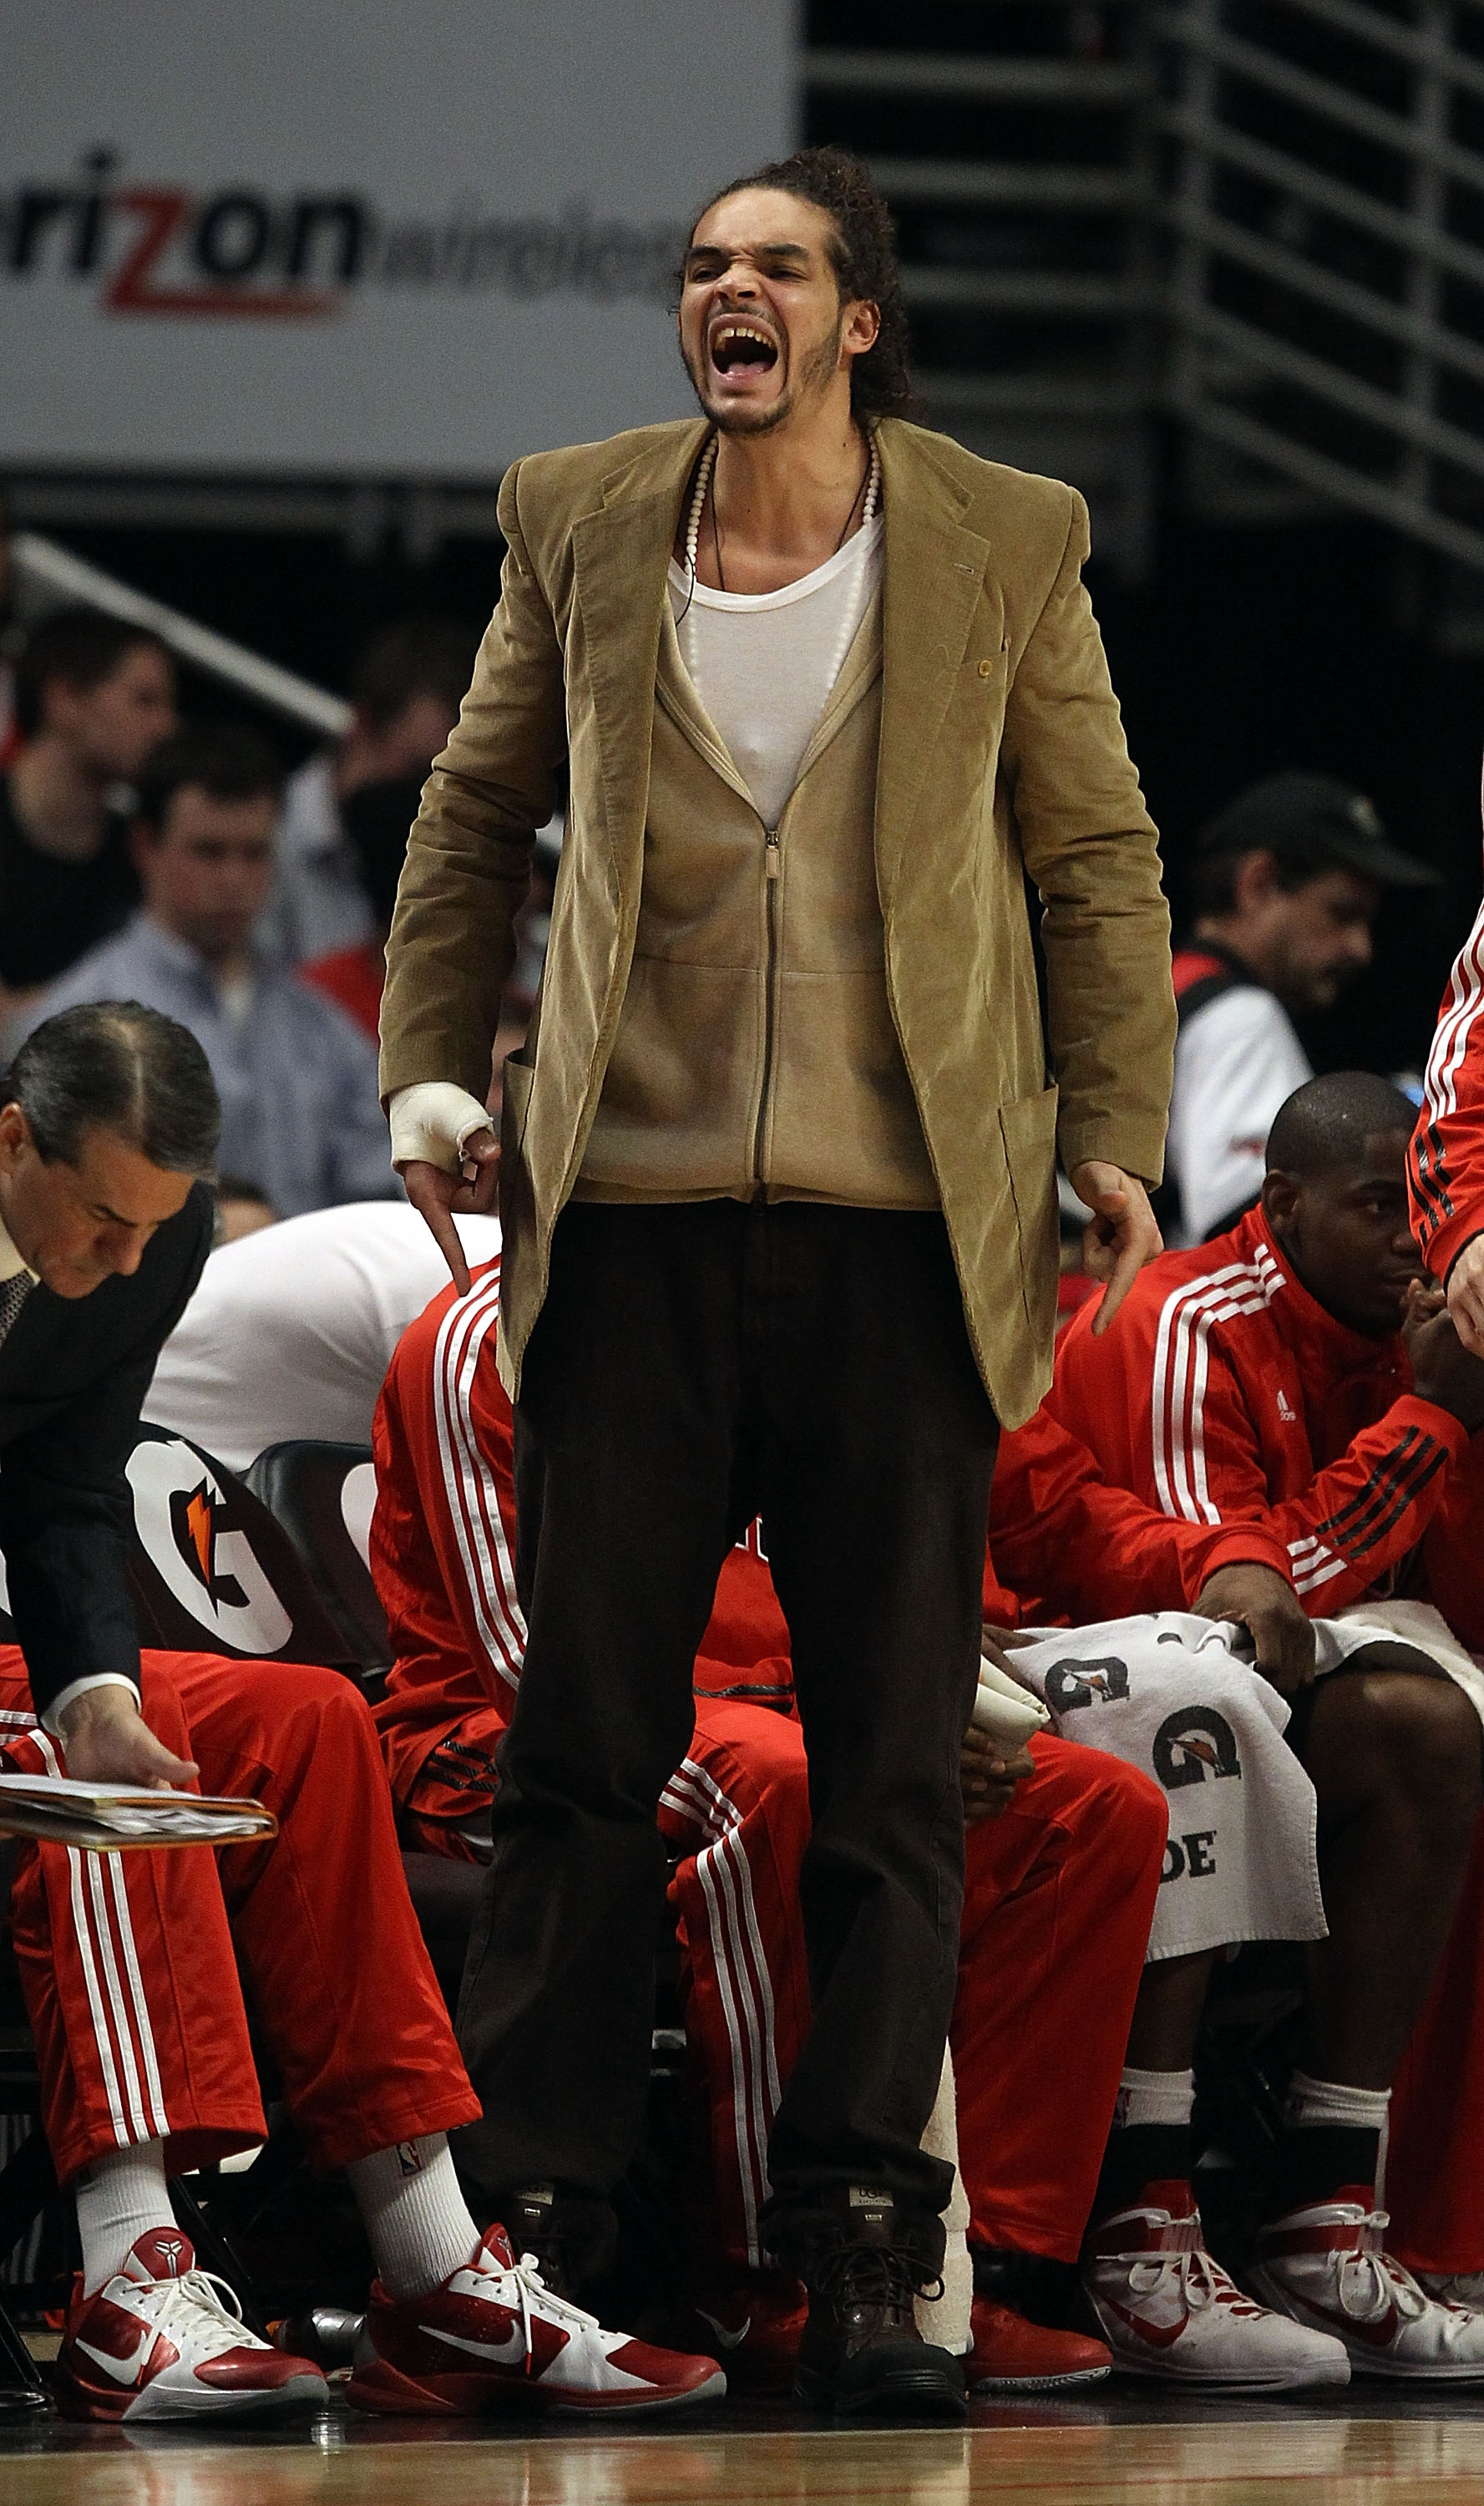 CHICAGO, IL - JANUARY 28: Injured player Joakim Noah of the Chicago Bulls shouts encouragement to teammates from the bench during a game against the Orlando Magic at the United Center on January 28, 2011 in Chicago, Illinois. The Bulls defeated the Magic